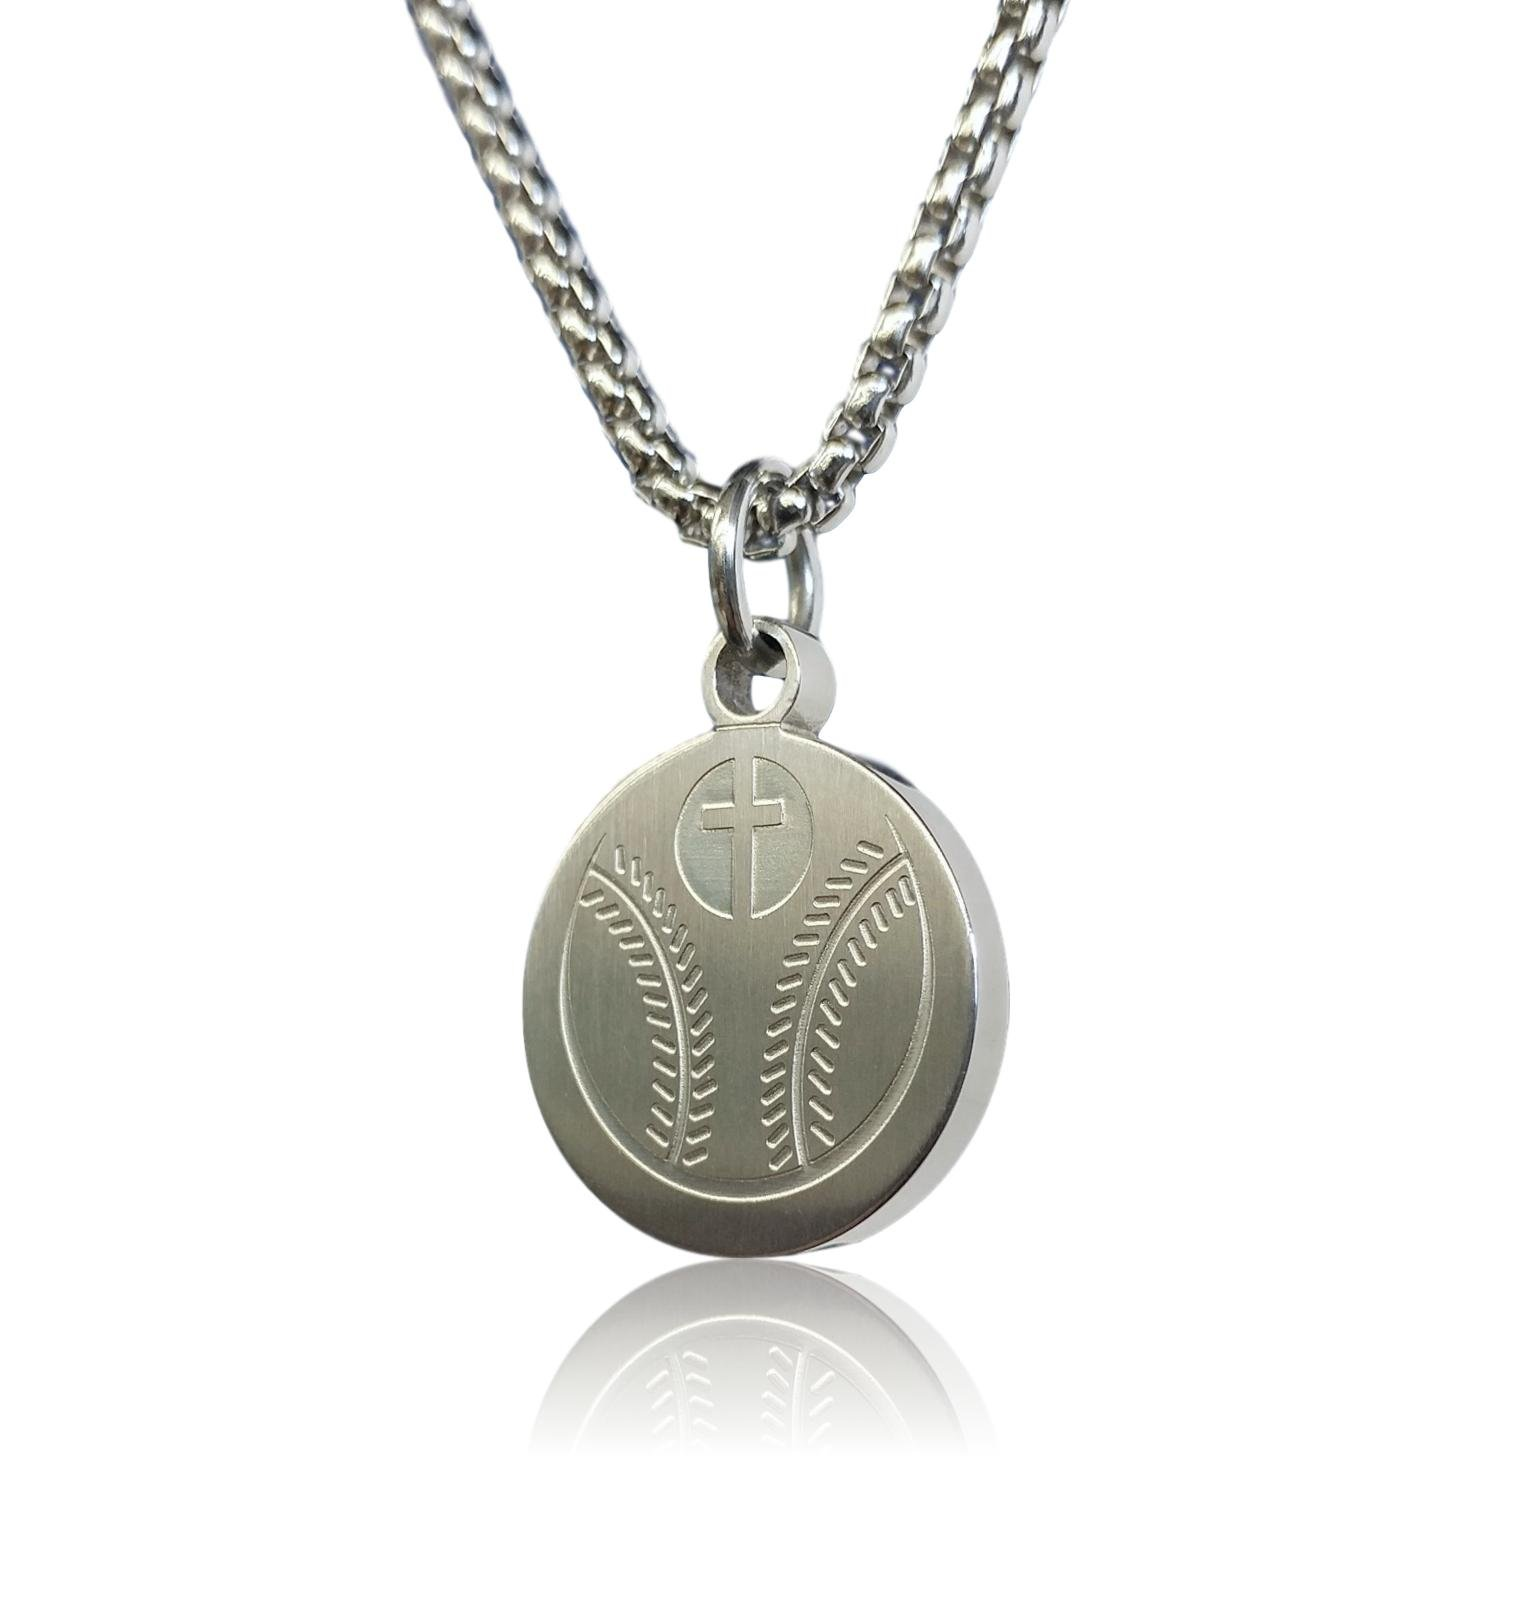 Pendant Sports Baseball Prayer Necklace Crafted in Stainless Steel with Luke 1:37 on The Back, and Nicely Presented in a Black Velvet Jewelry Box.